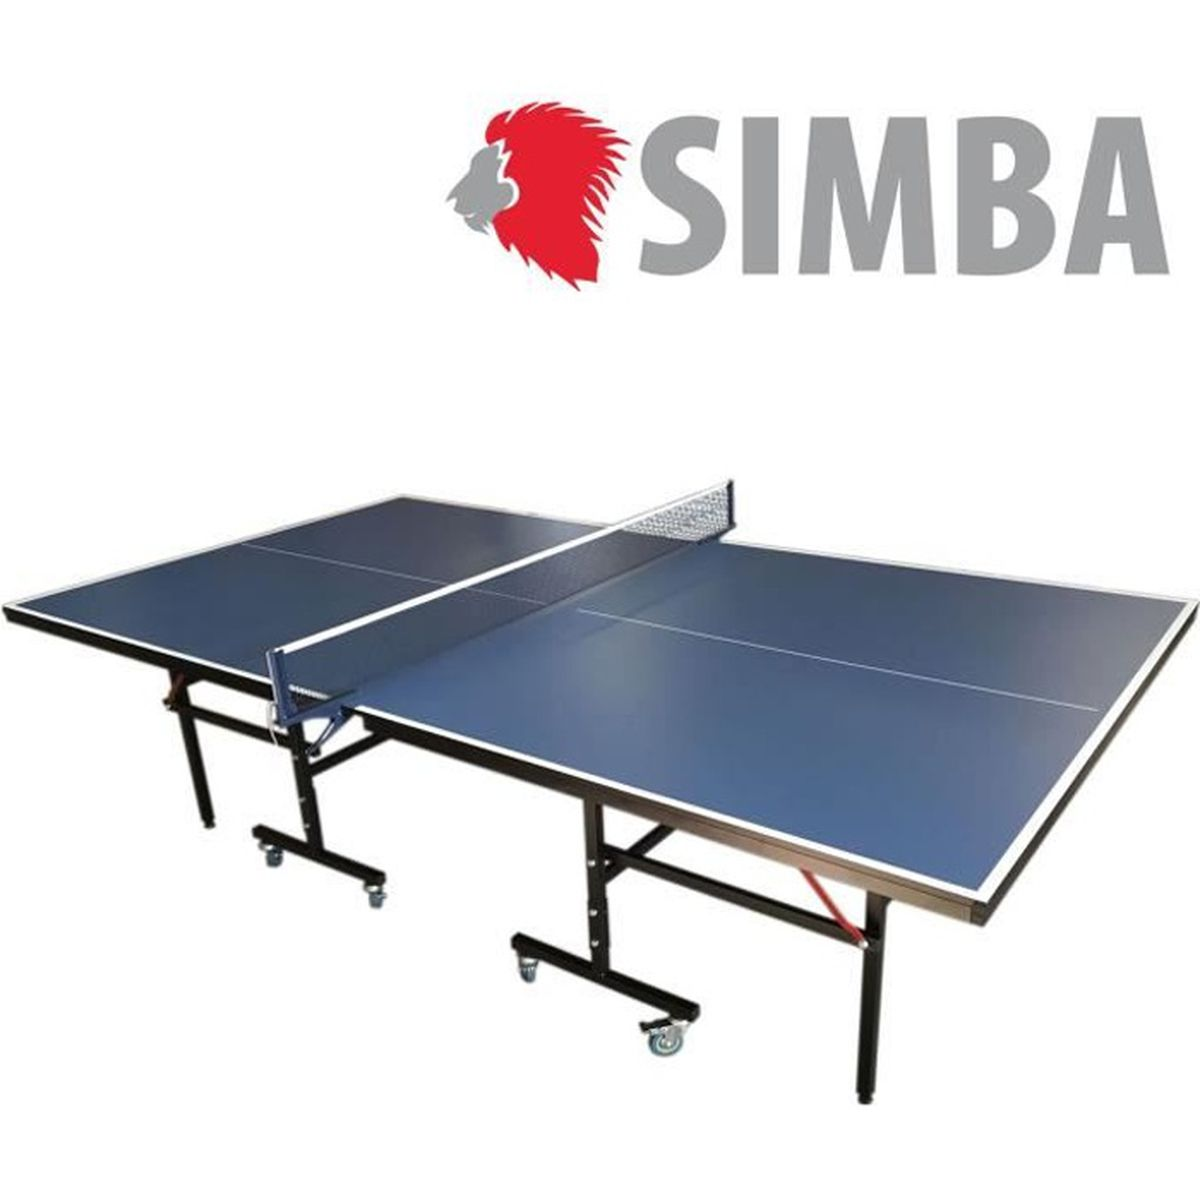 table ping pong sponeta achat vente pas cher cdiscount. Black Bedroom Furniture Sets. Home Design Ideas